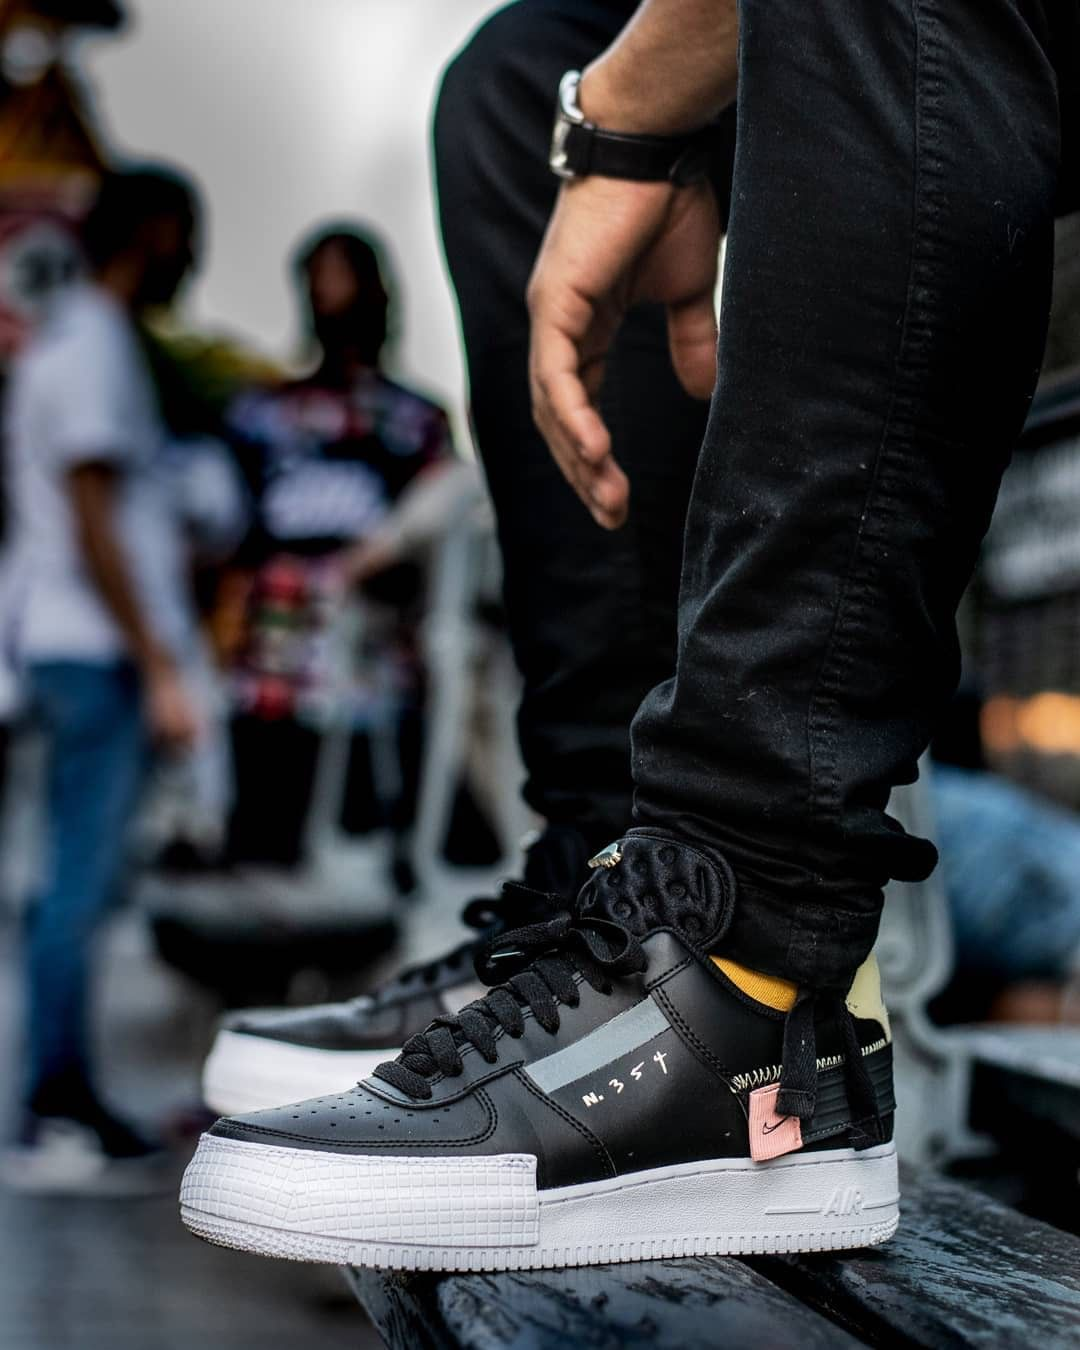 Air Force 1 Low Drop Type Black en 2020 | Nike air force